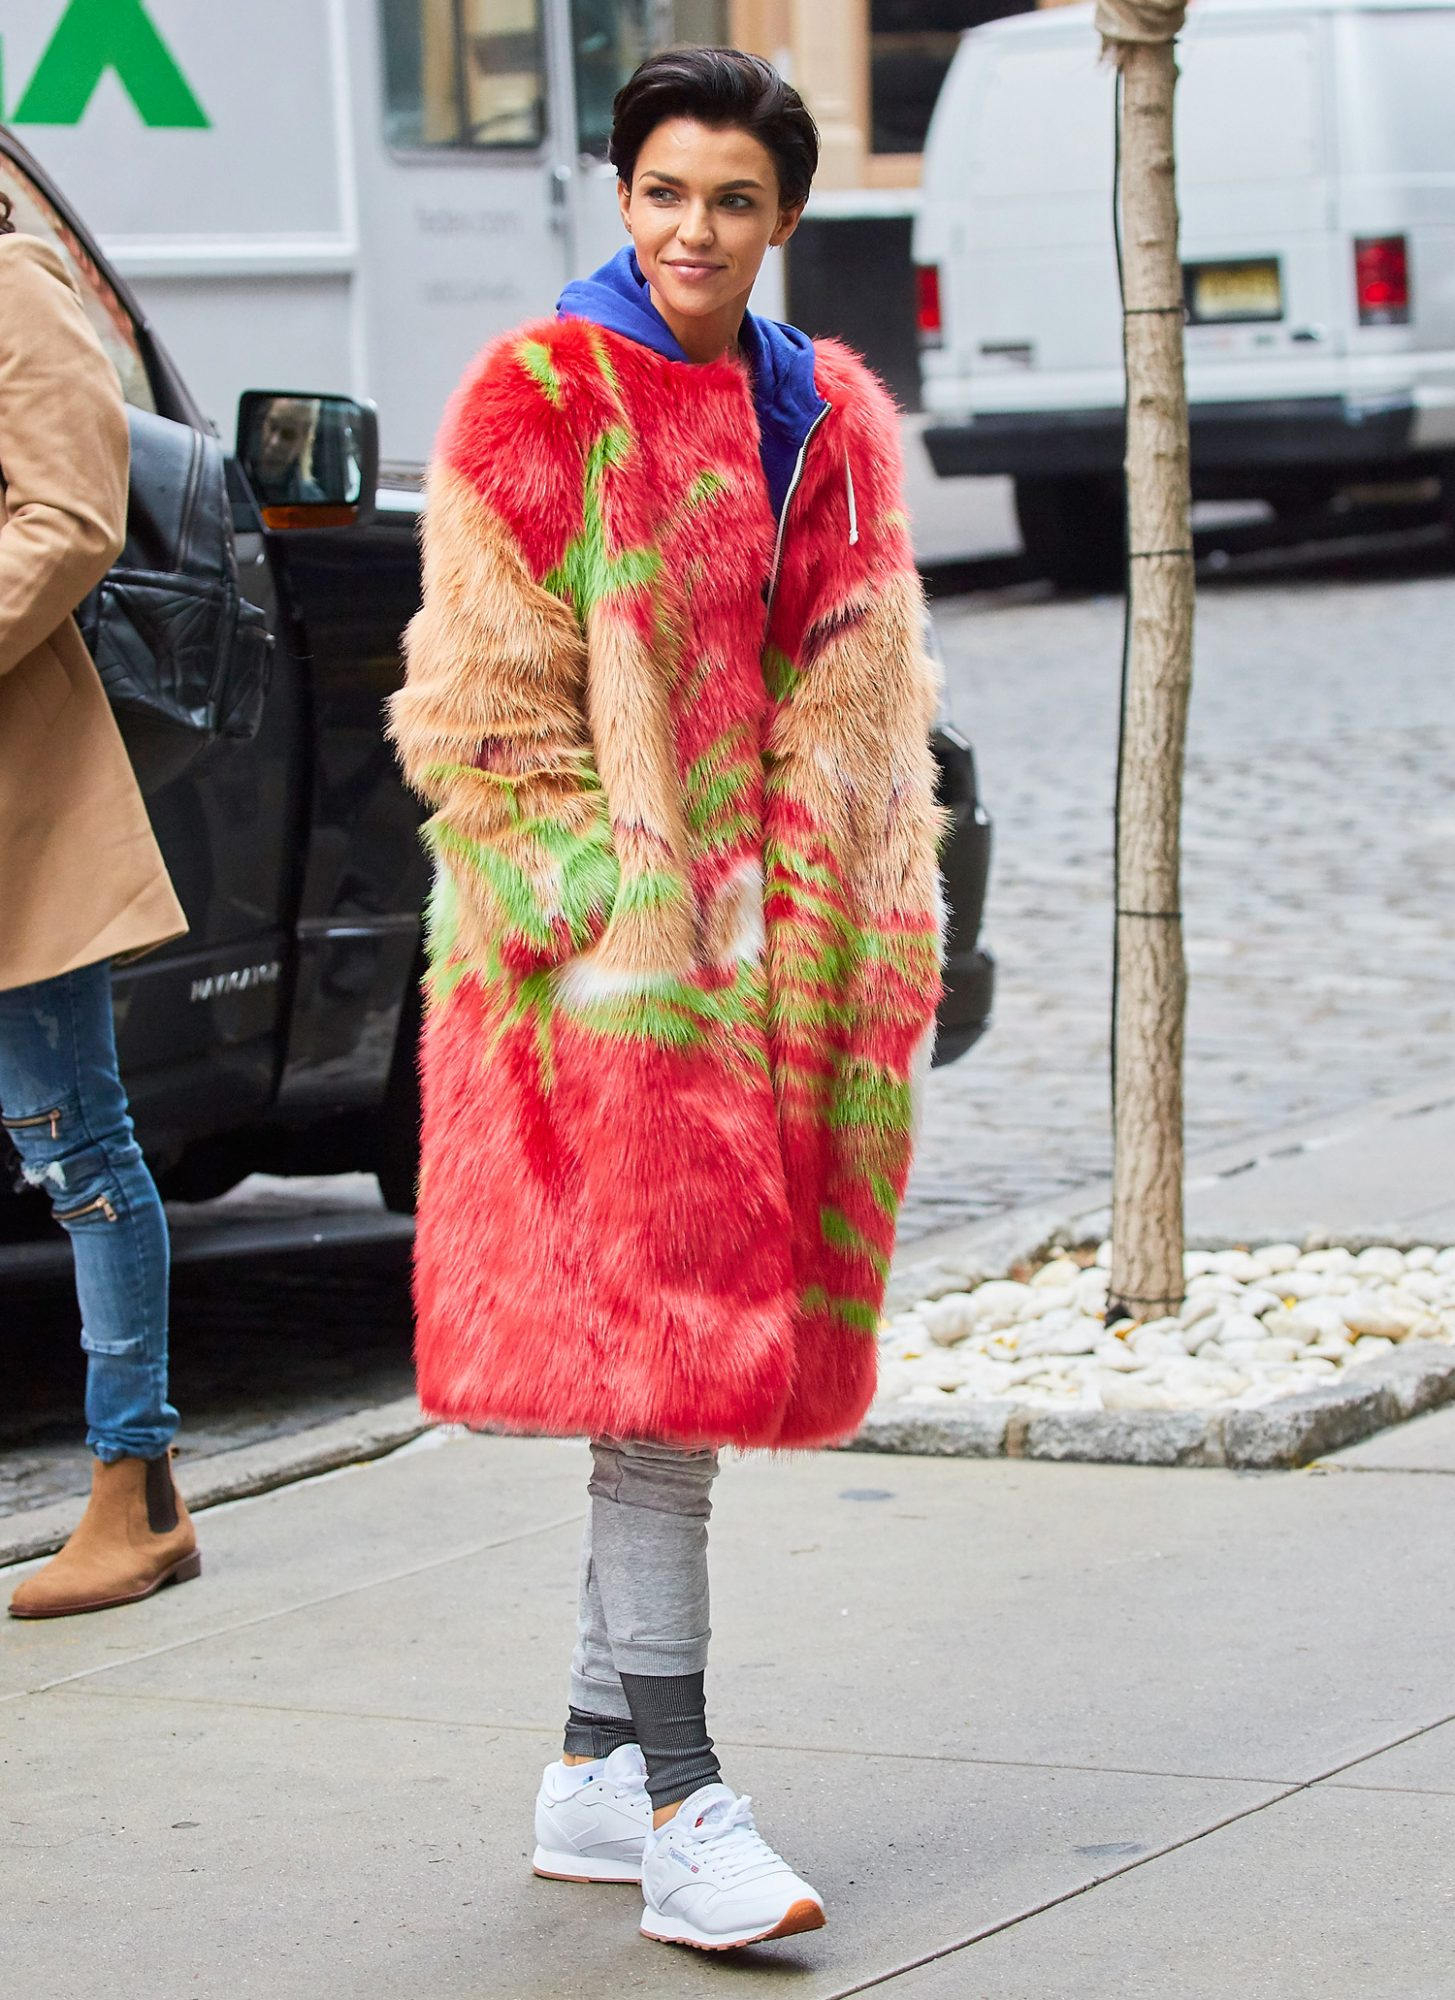 Ruby Rose spotted wearing a quirky colorful coat while out and about in NYC